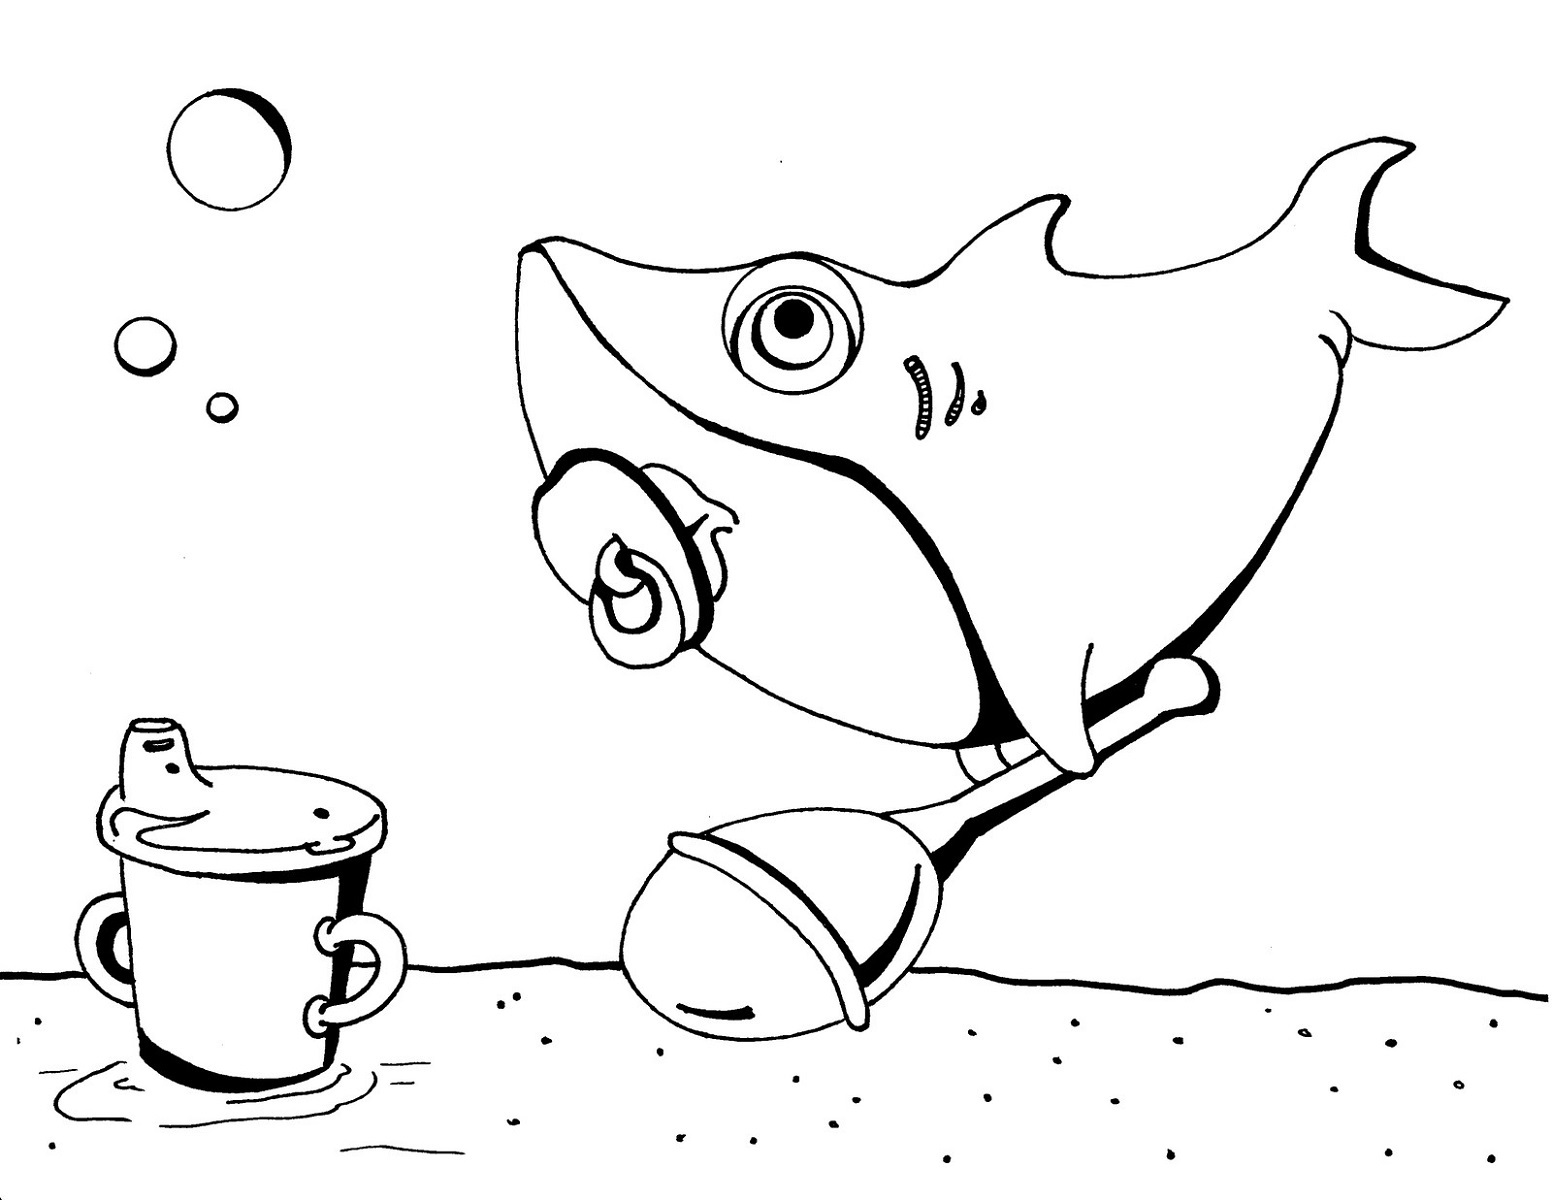 shark coloring pictures to print free shark coloring pages shark print pictures coloring to